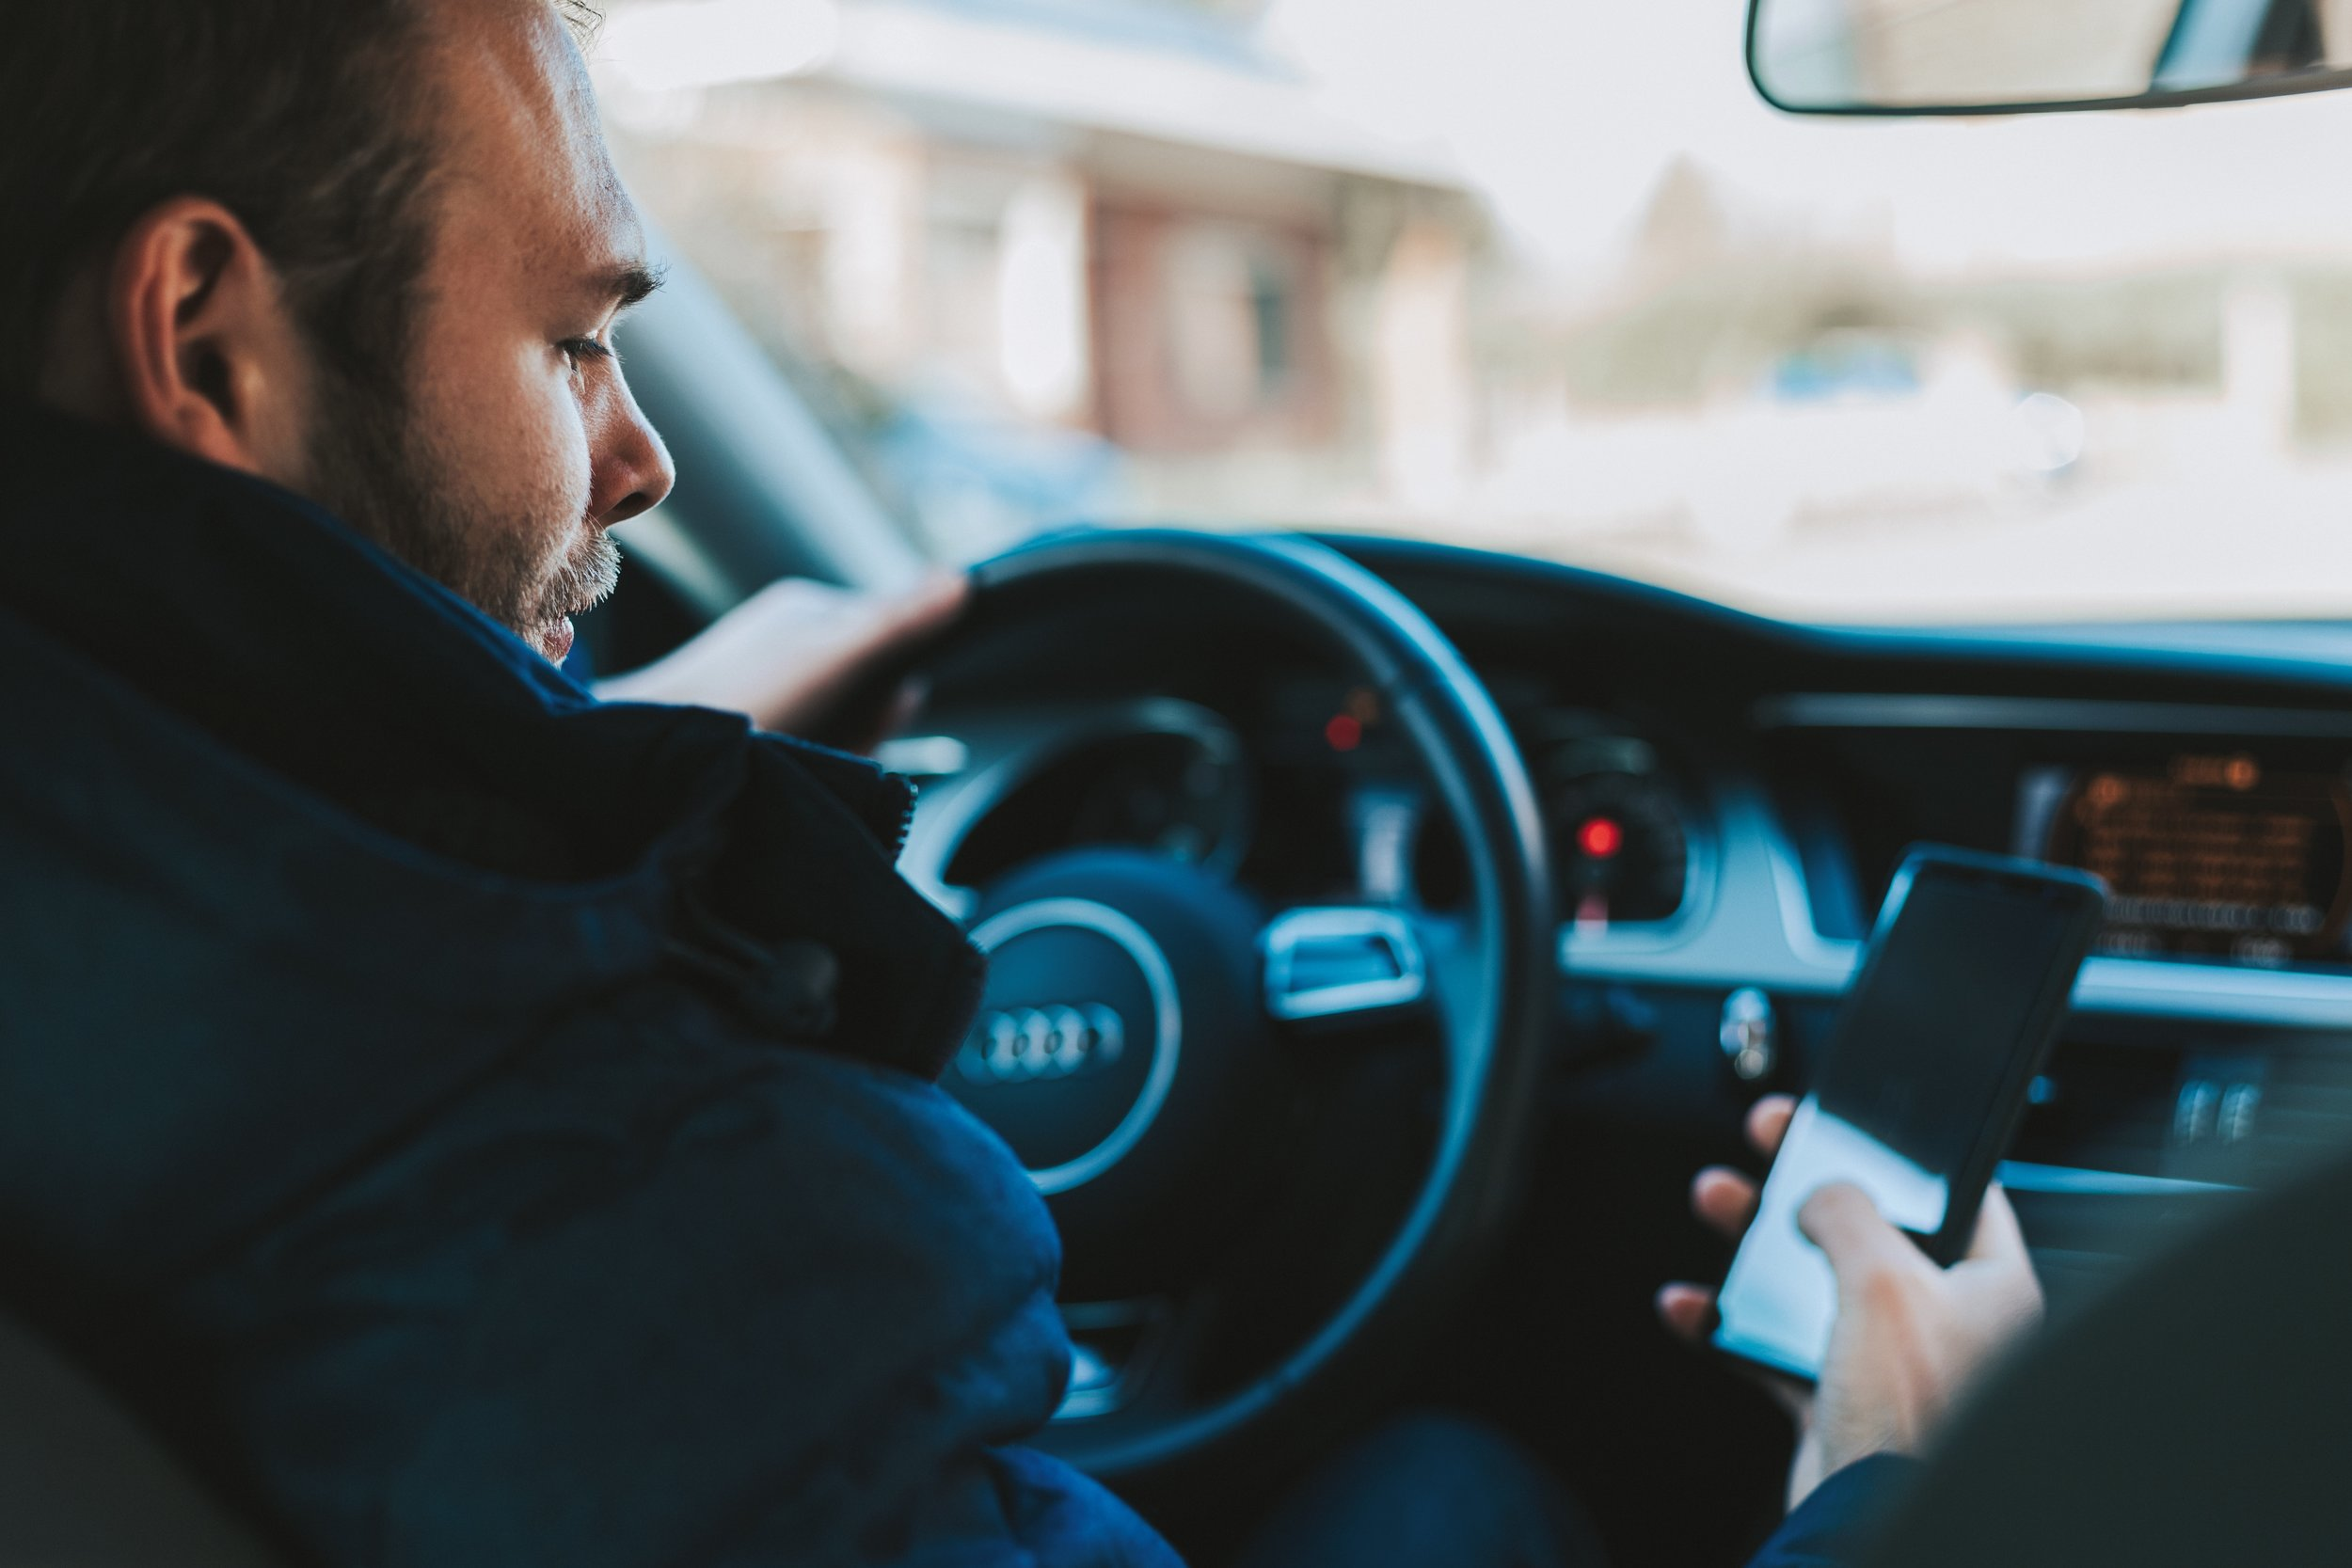 High Distracted Driving Fines Are Getting Attention -